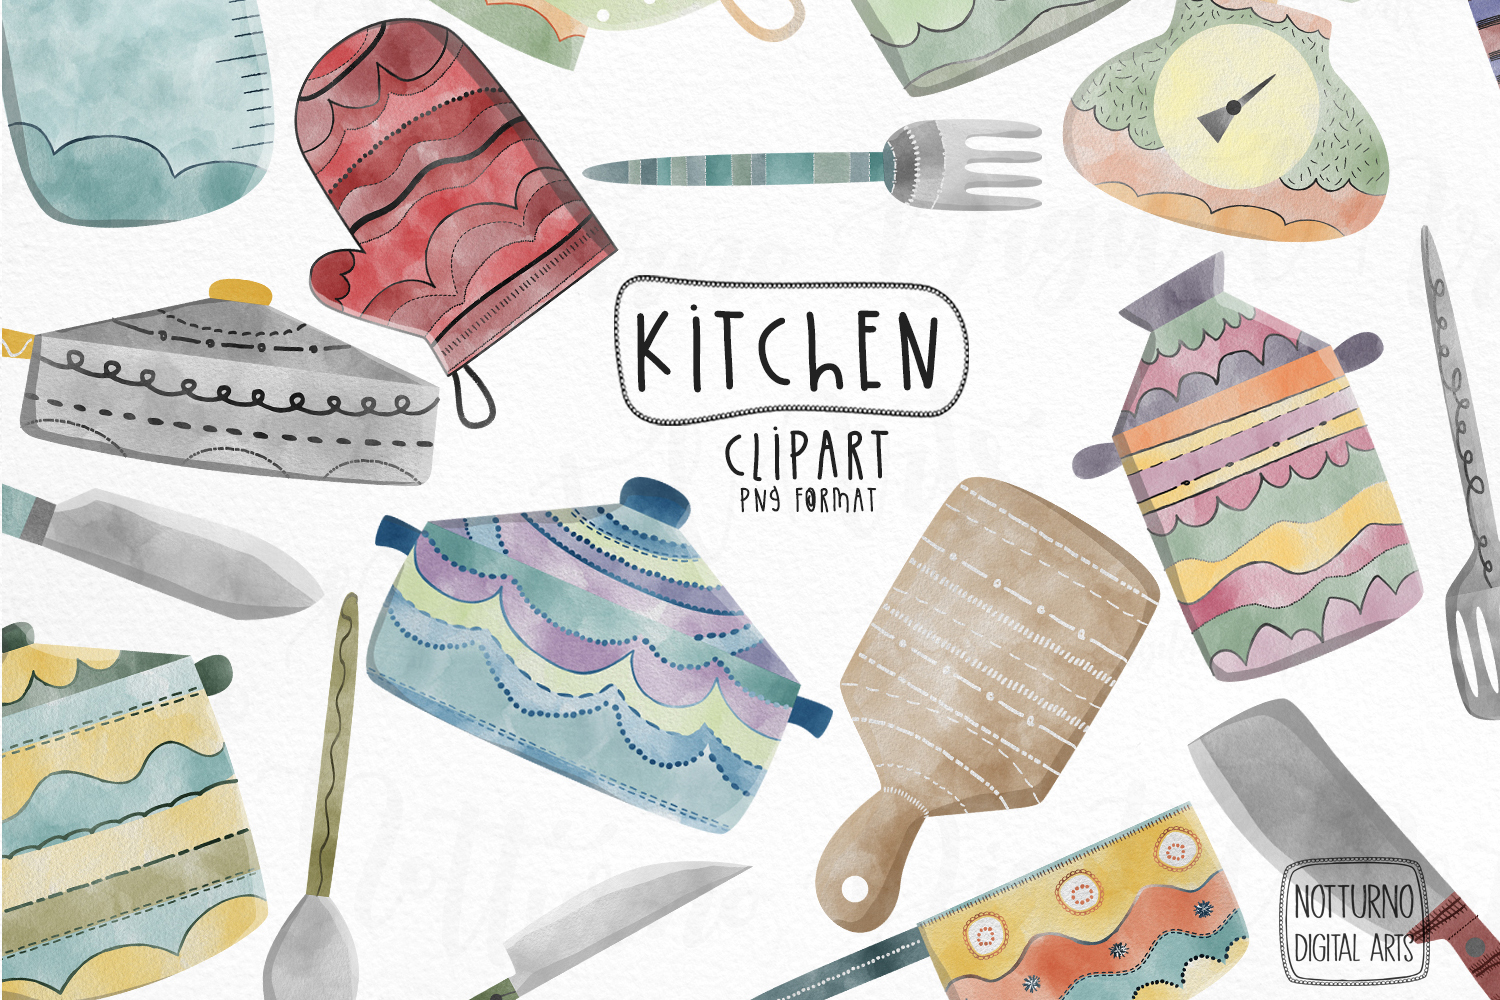 Watercolor Kitchen clipart. Kitchen utensil example image 1